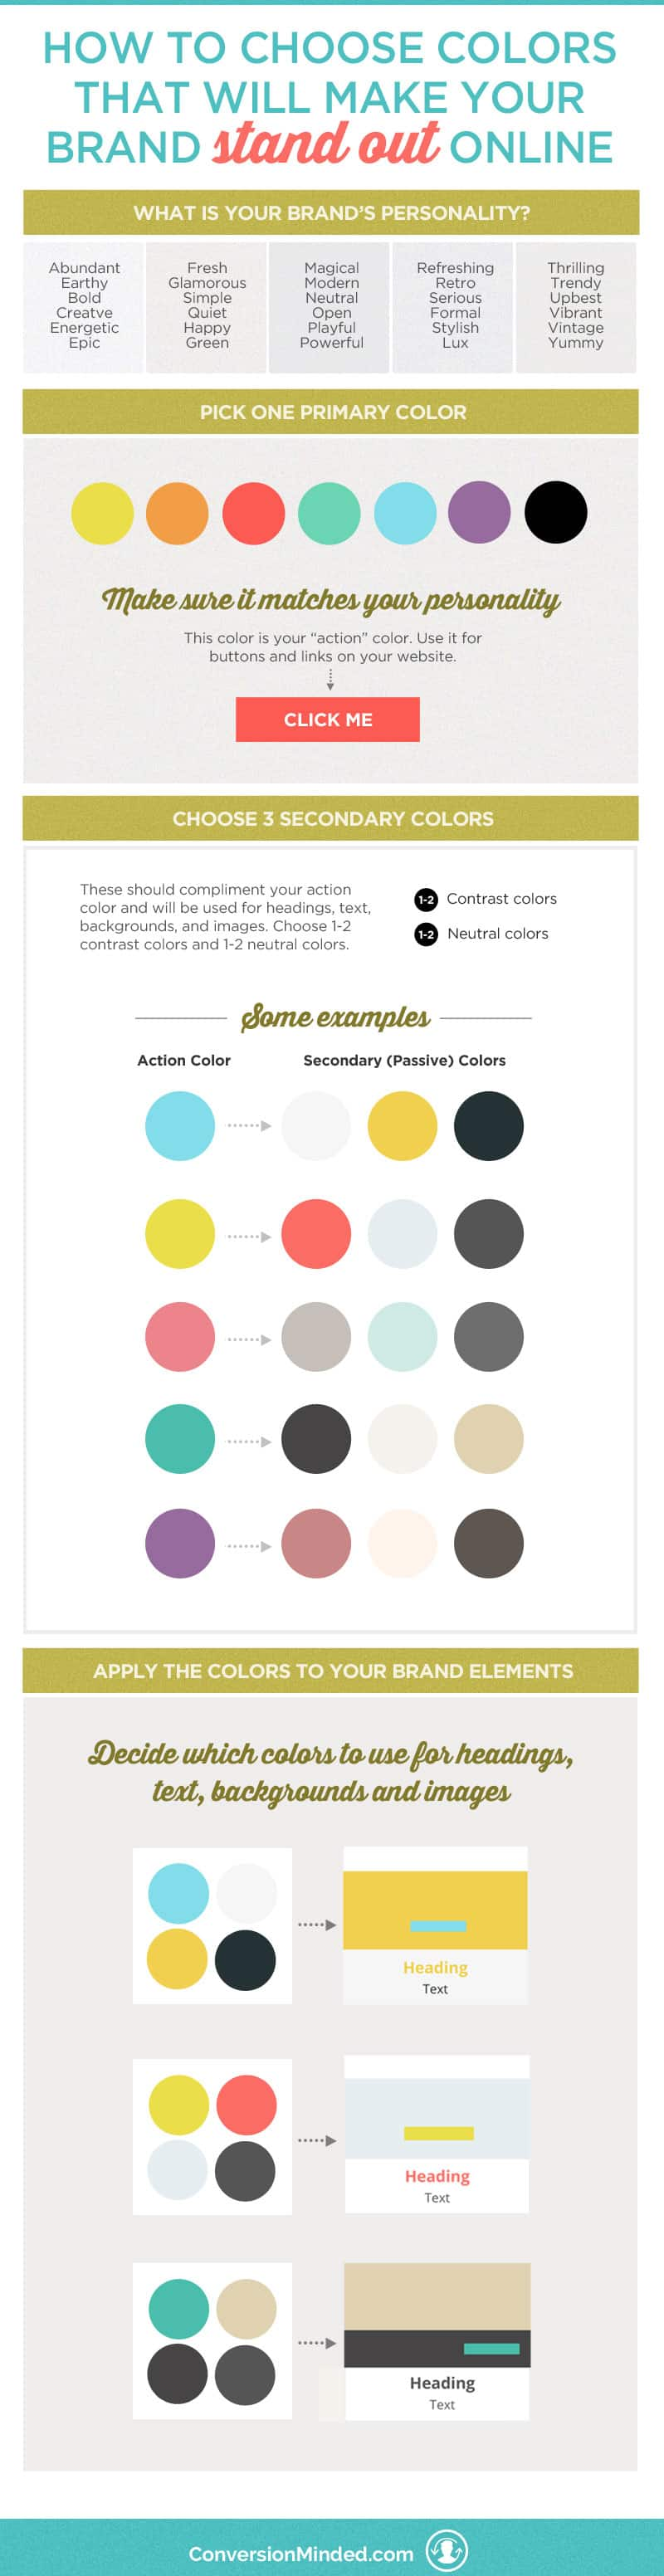 How to Choose Colors That Will Make Your Brand Stand Out | Do you love creating mood boards and collecting colors, but then find yourself a bit stumped with how to apply them to your brand? This post will help! It includes tips for entrepreneurs and biz owners to help you select and apply your brand colors, with purpose and intention. Click through to see all the color tips!!